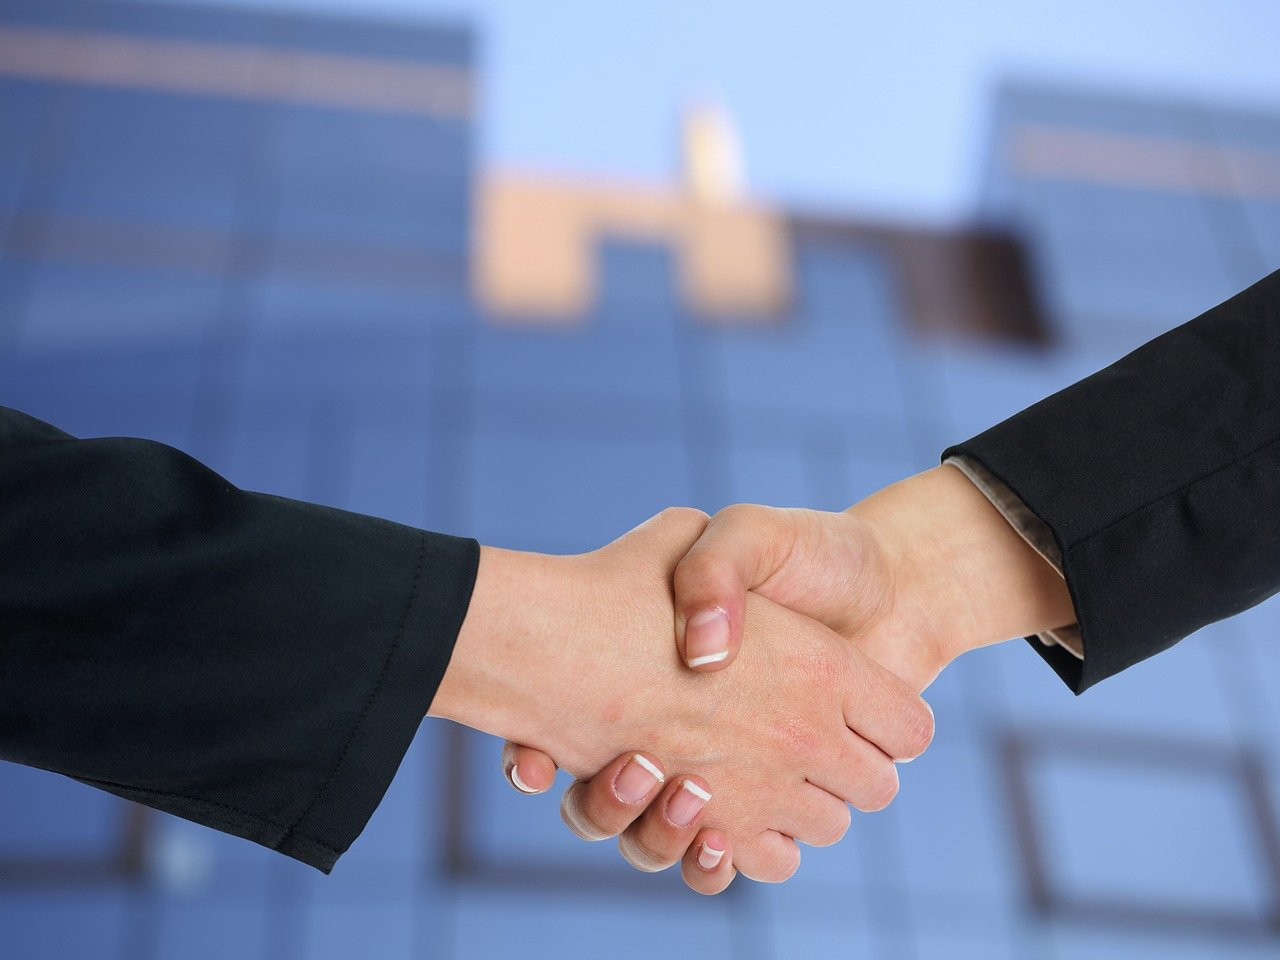 Shore Bancshares to acquire Severn Bancorp in $146m deal